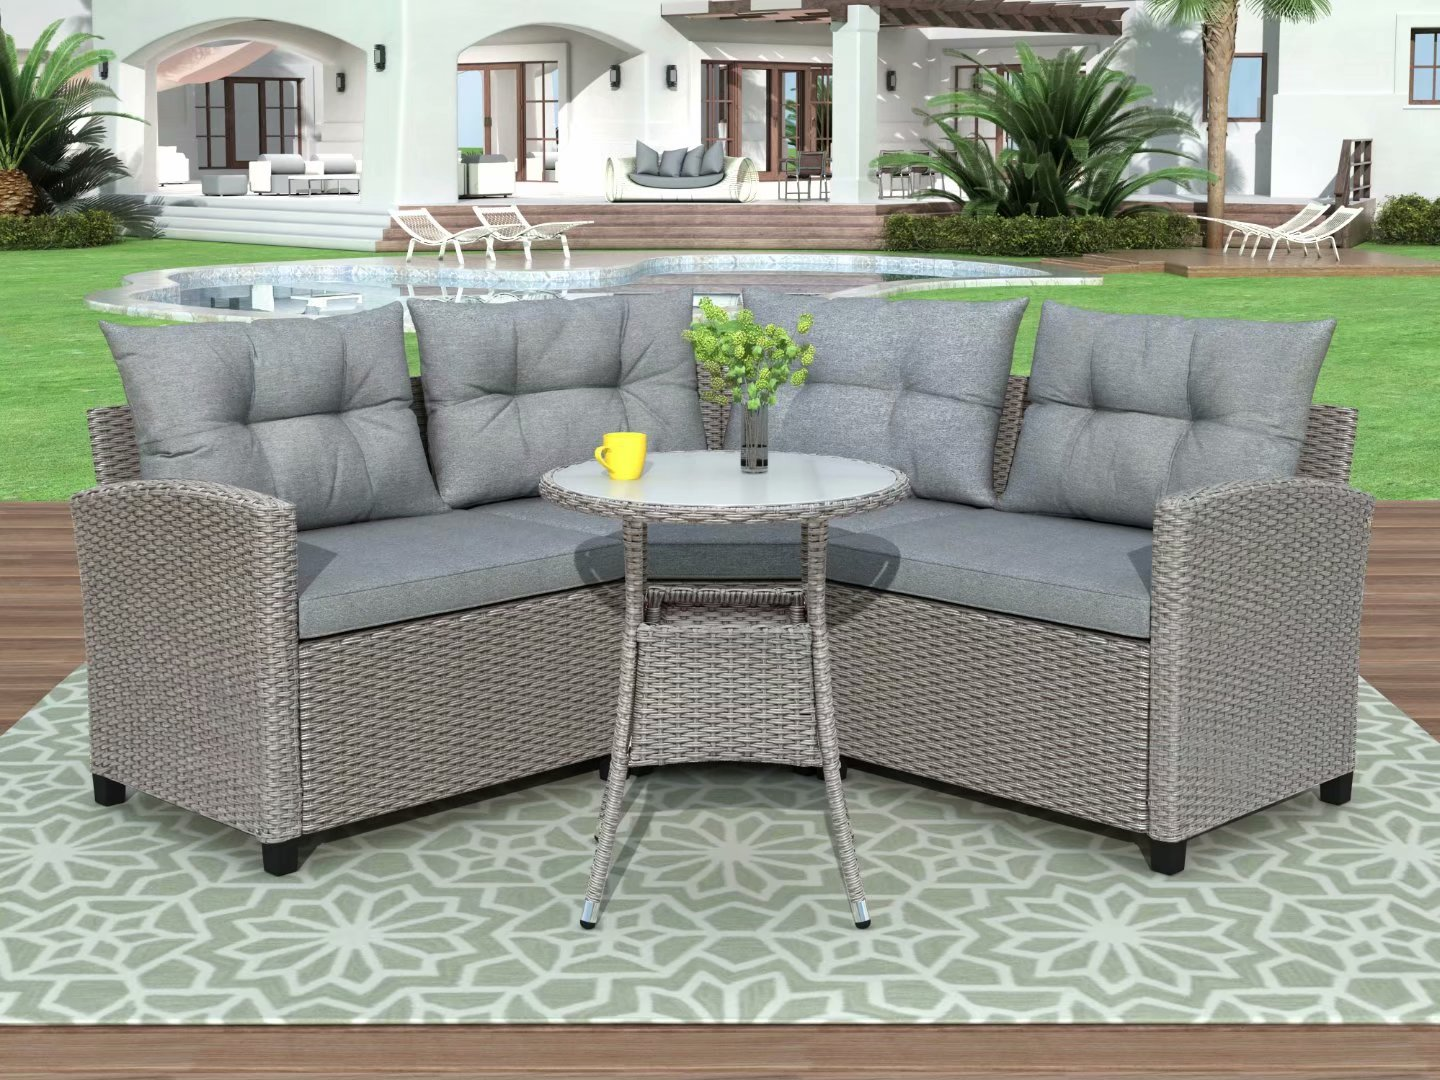 u style 4 piece resin wicker patio furniture set with round table gray cushions